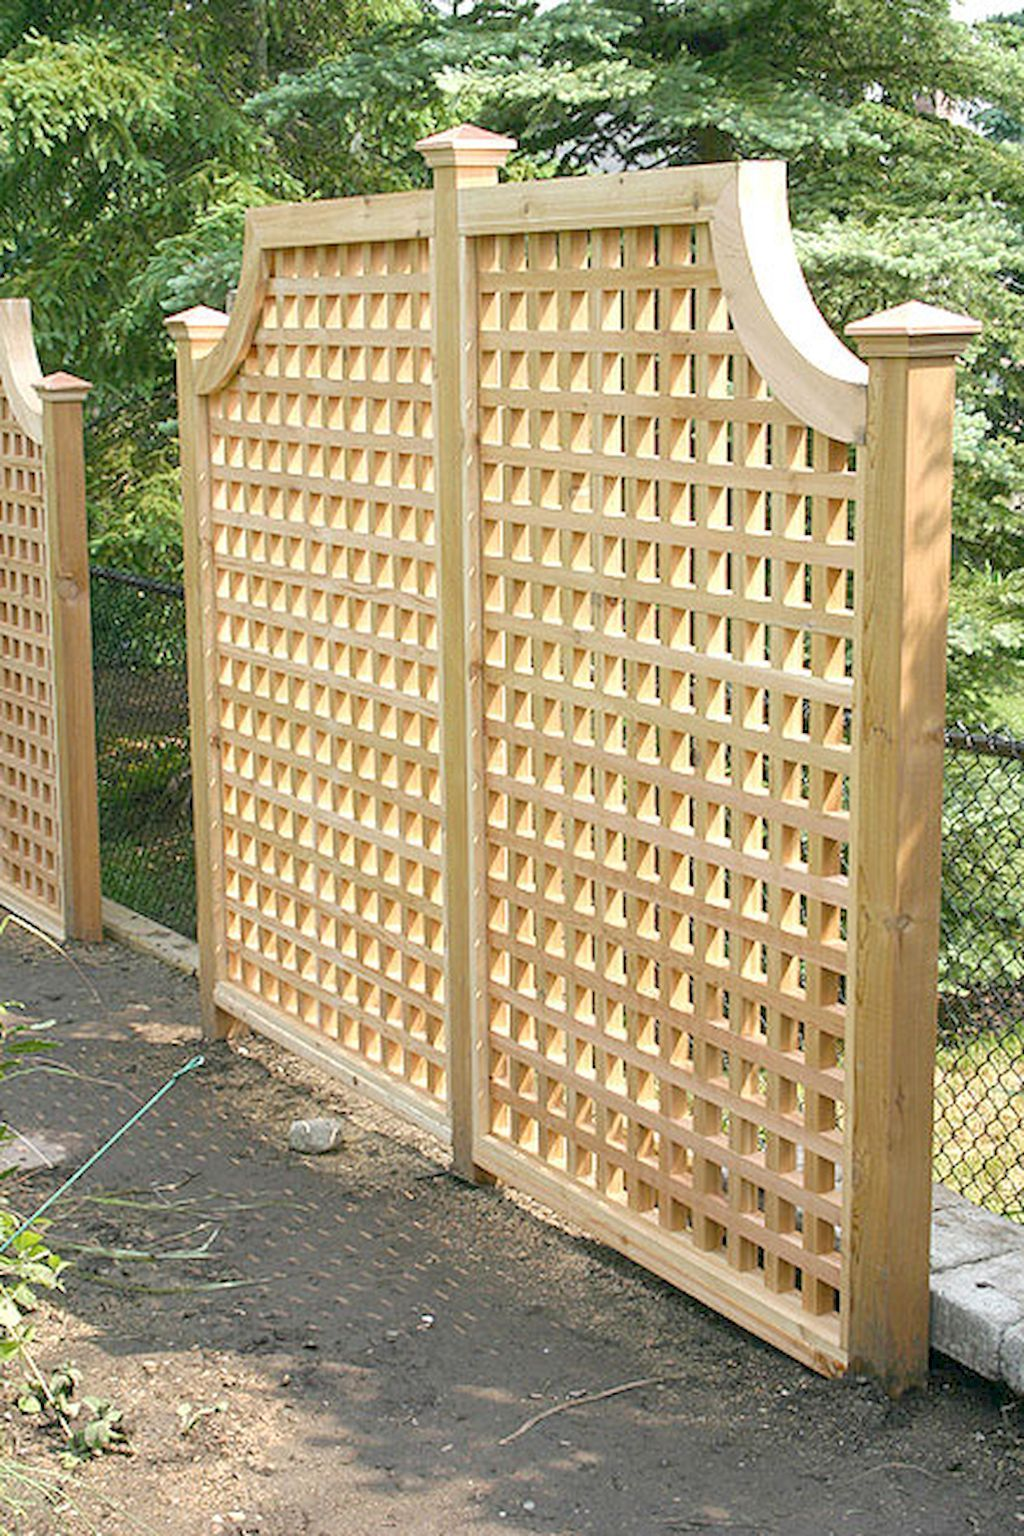 Nice 78 Creative Privacy Fence Ideas For Gardens And Backyards  Https://besideroom.